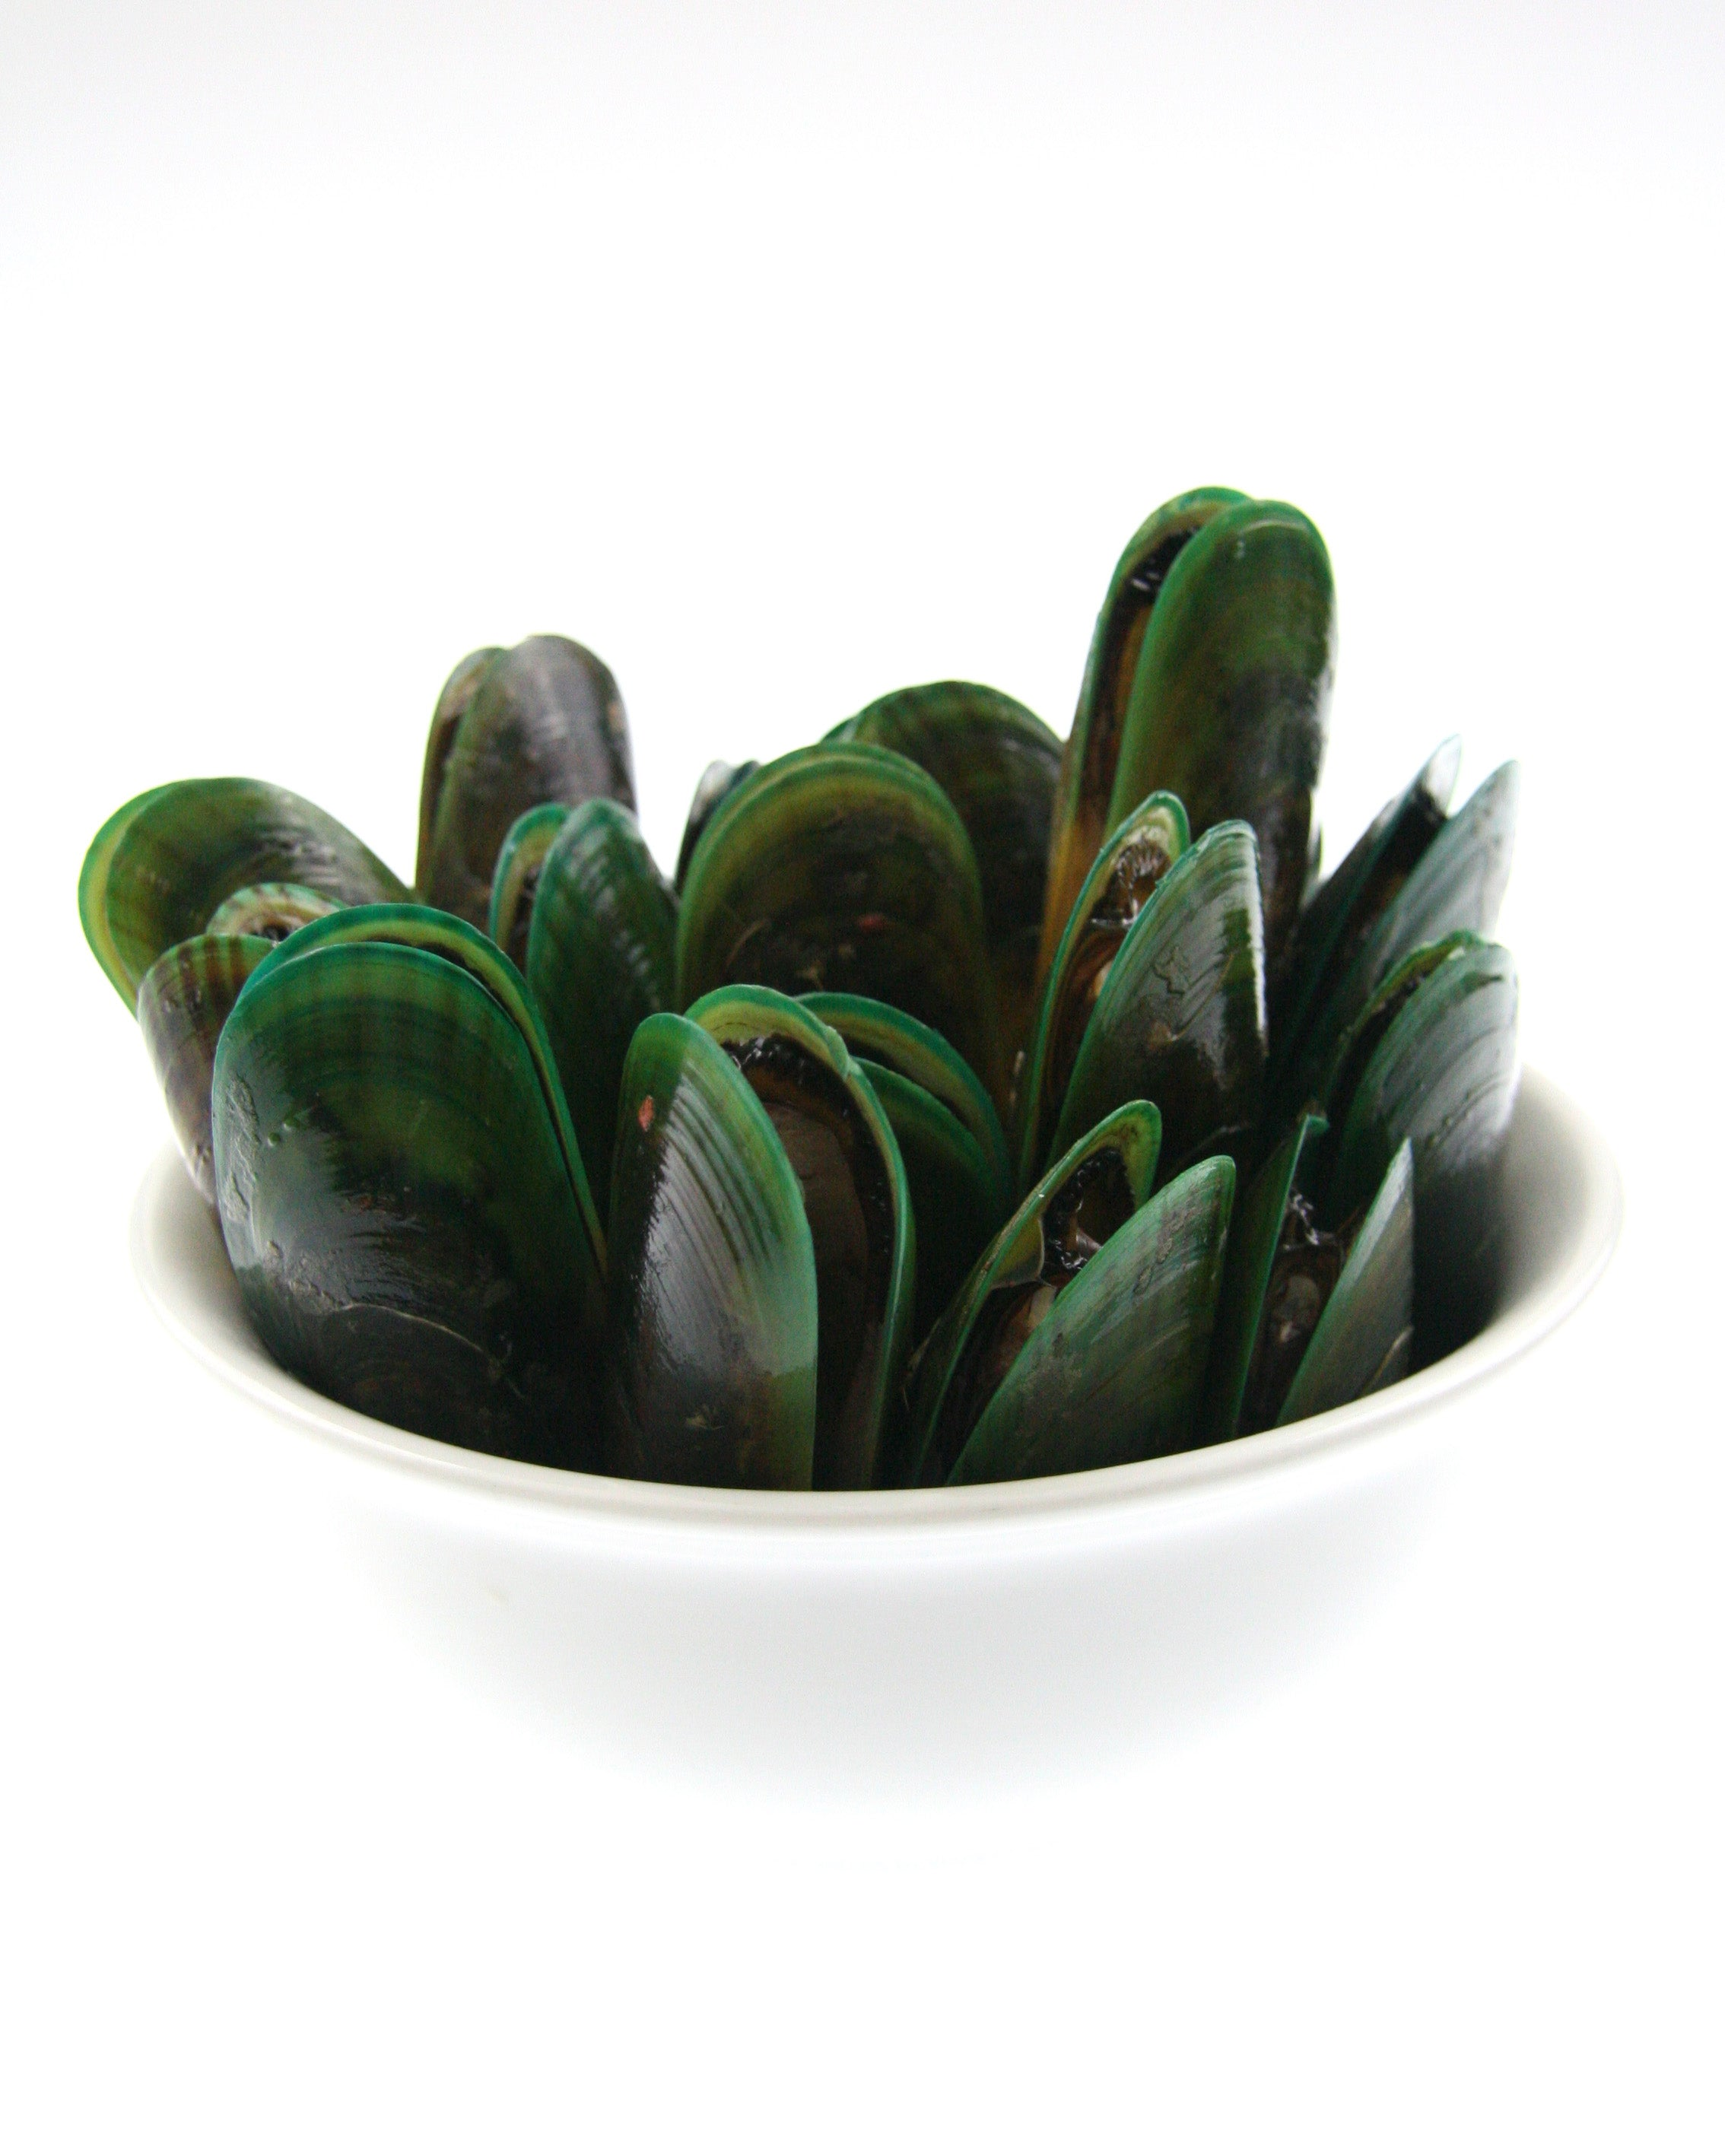 Greenshell™ Whole Mussels 1kg Box